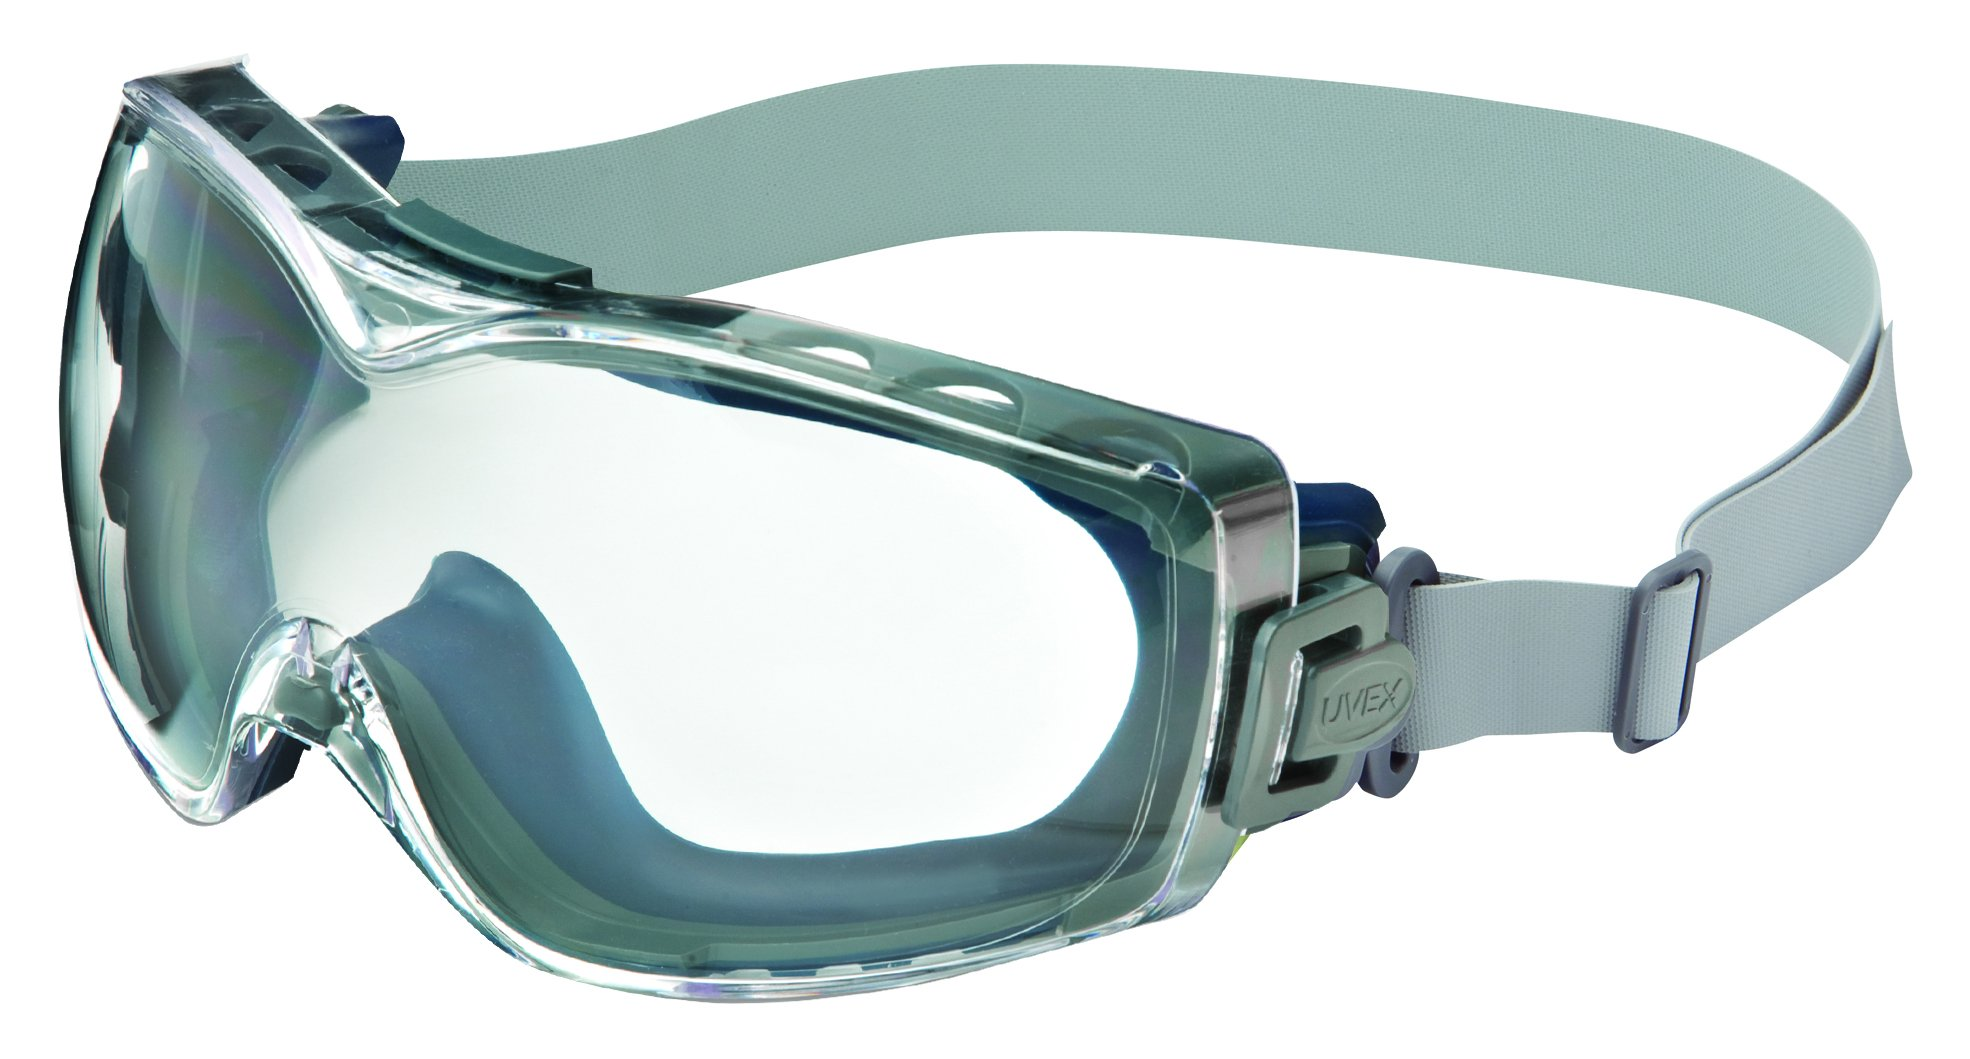 UVEX by Honeywell S740D Stealth OTG Clear Replacement Lens with Dura-streamed Anti-Scratch/Anti-Fog Coatings